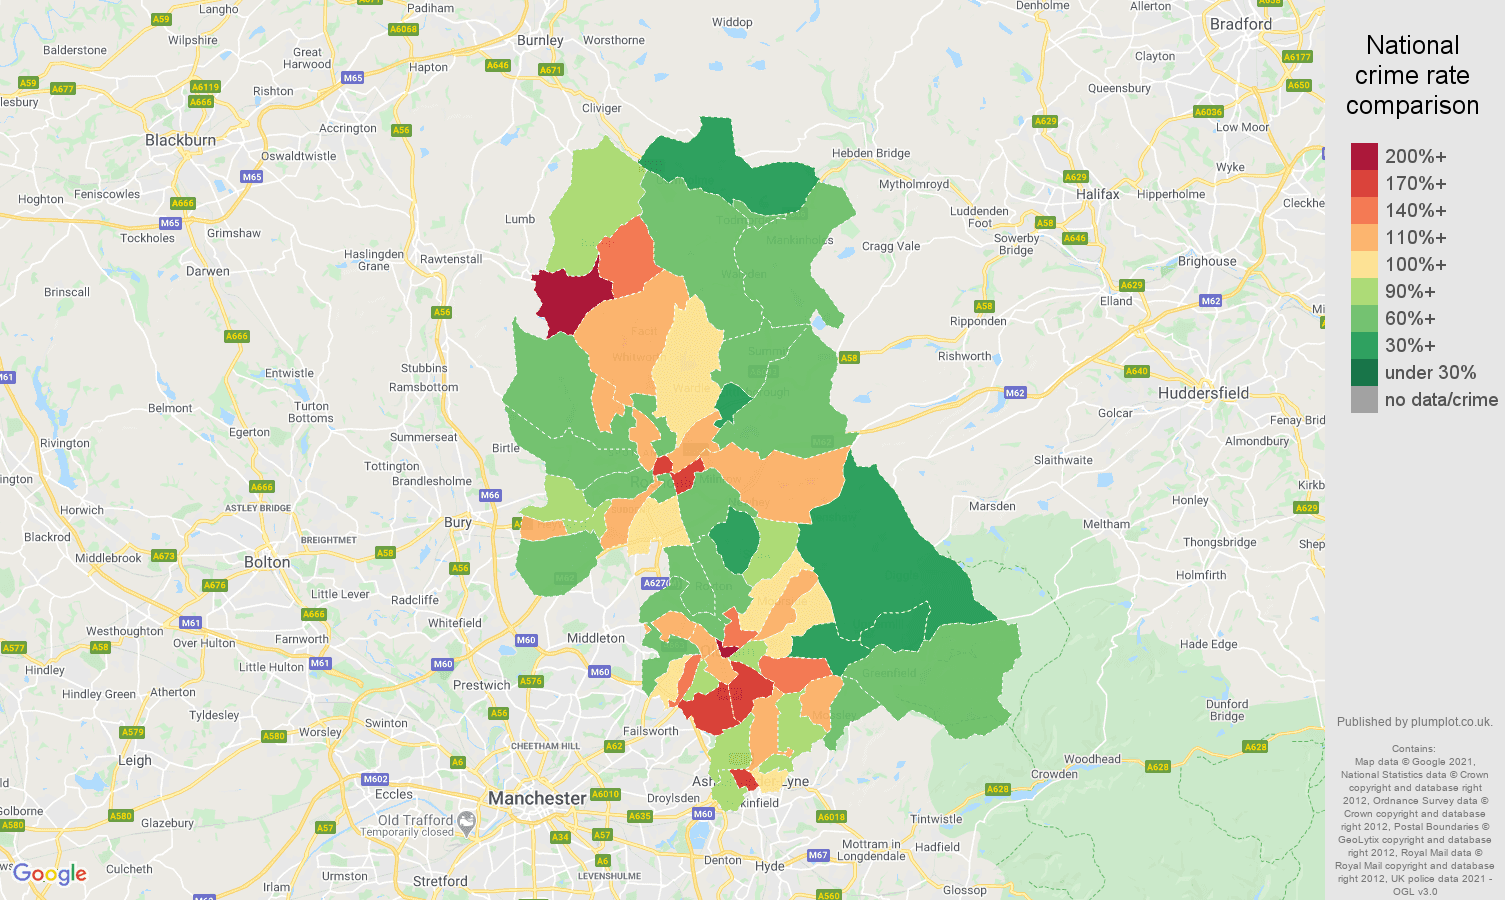 Oldham antisocial behaviour crime rate comparison map